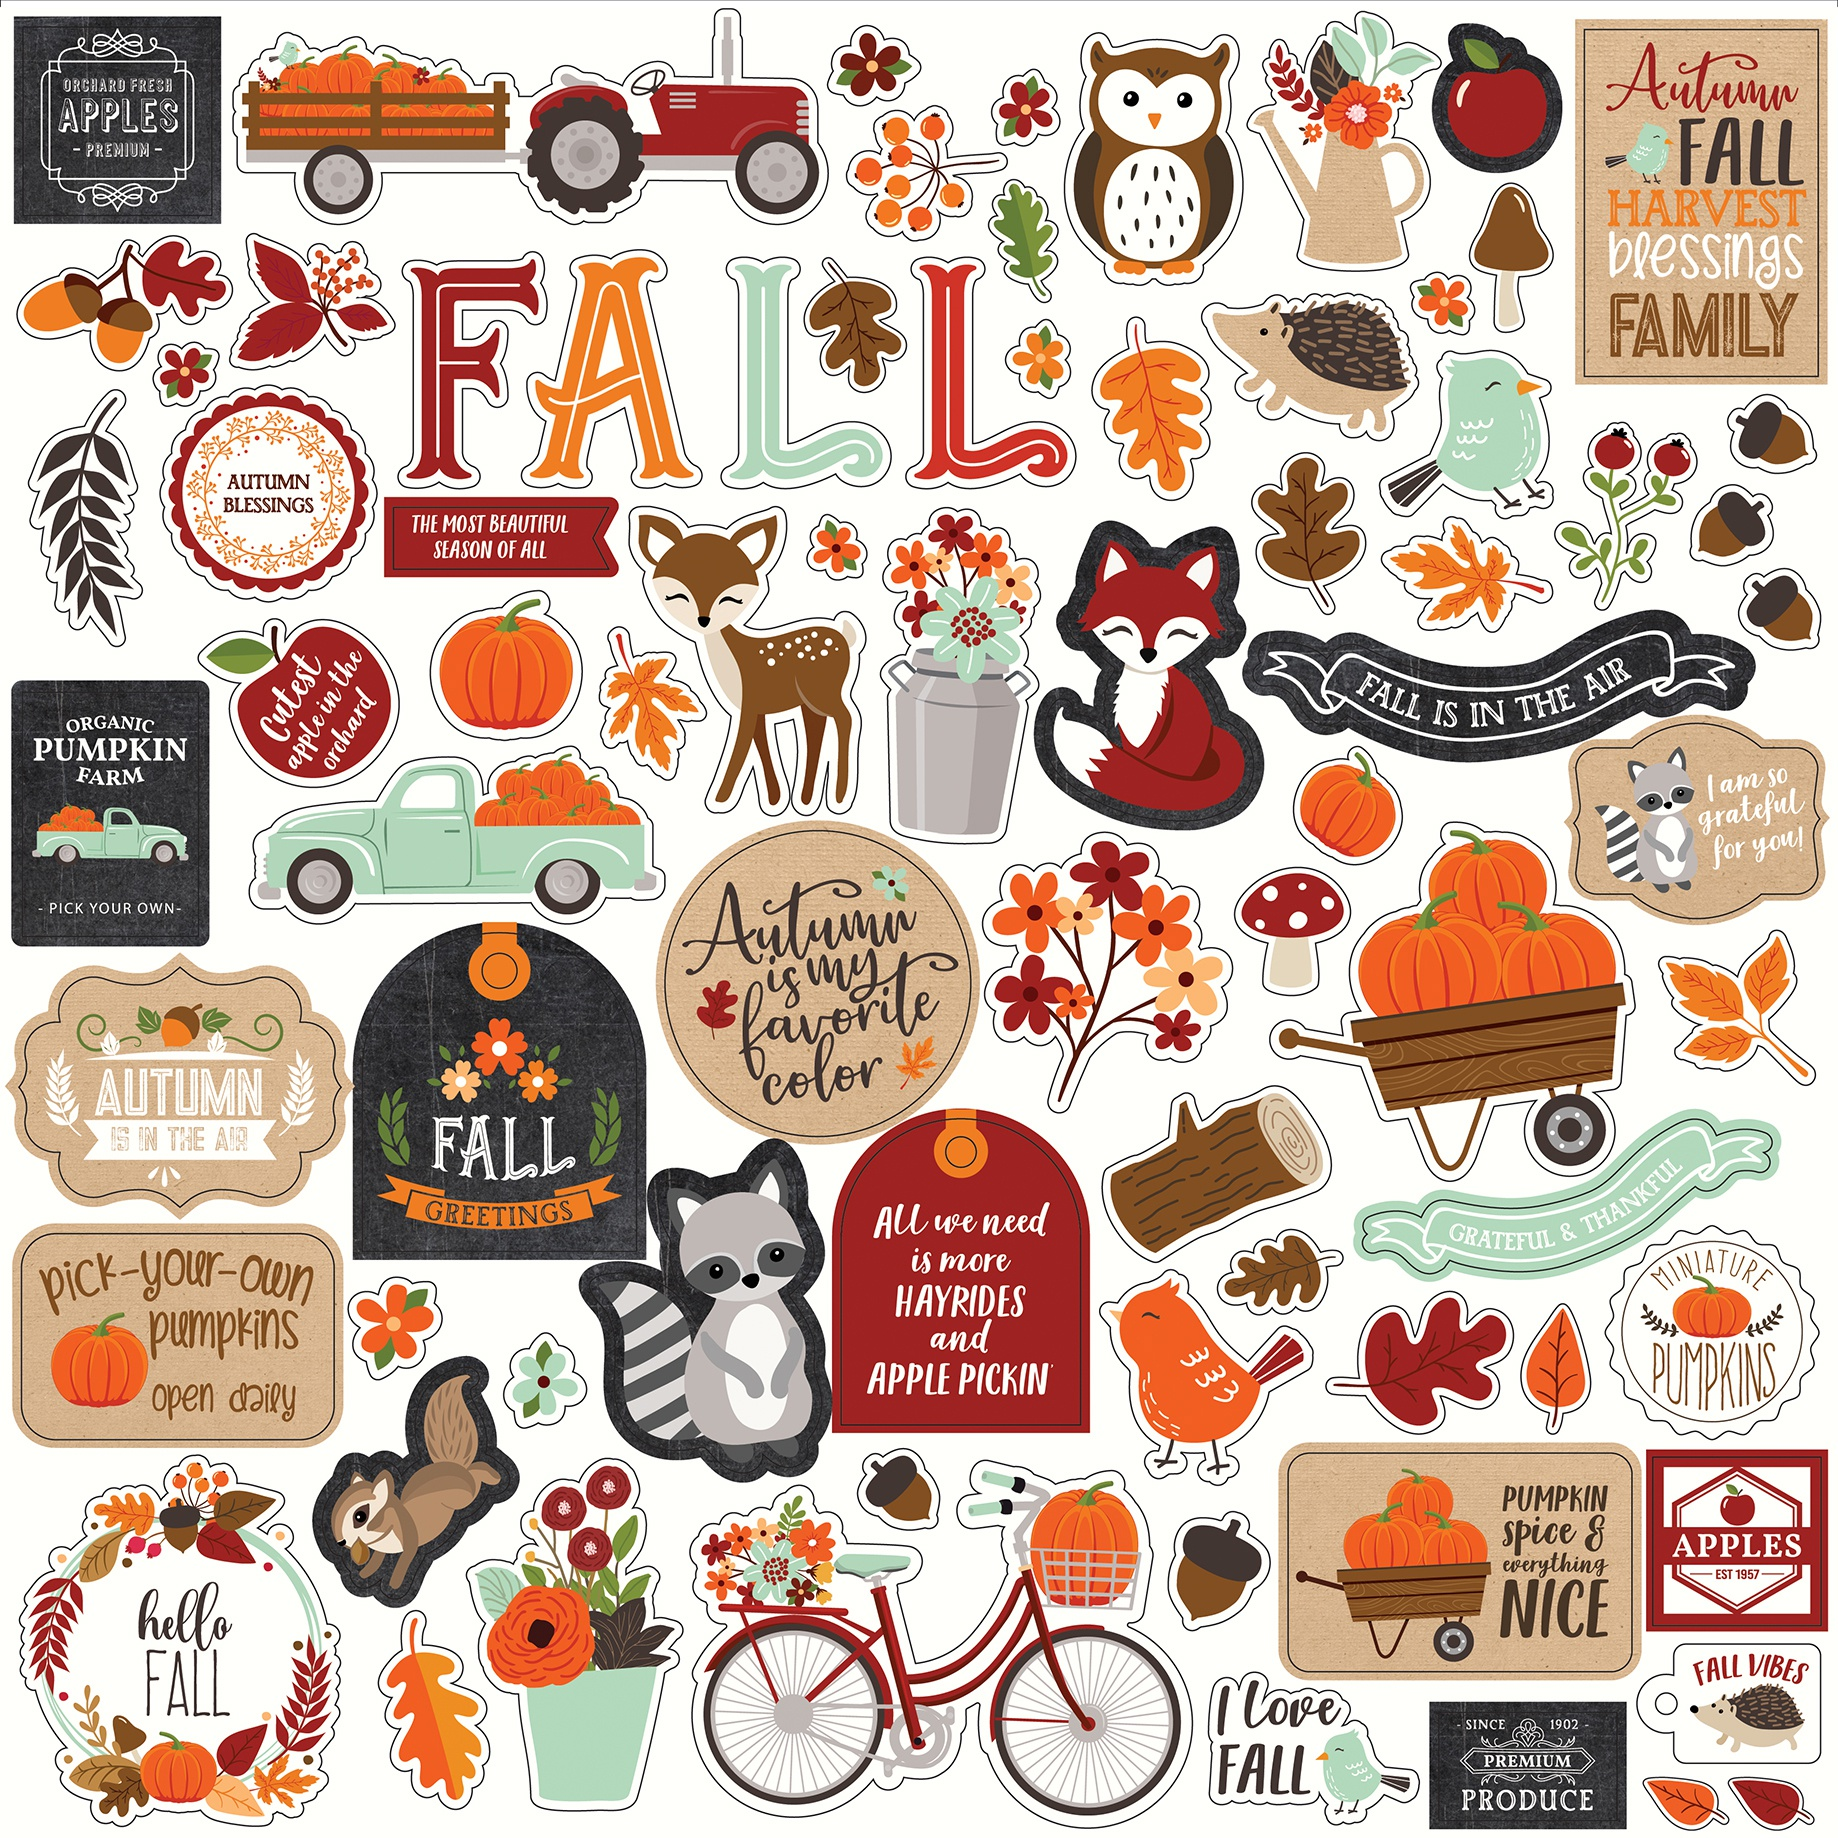 My Favorite Fall Cardstock Stickers 12X12-Elements